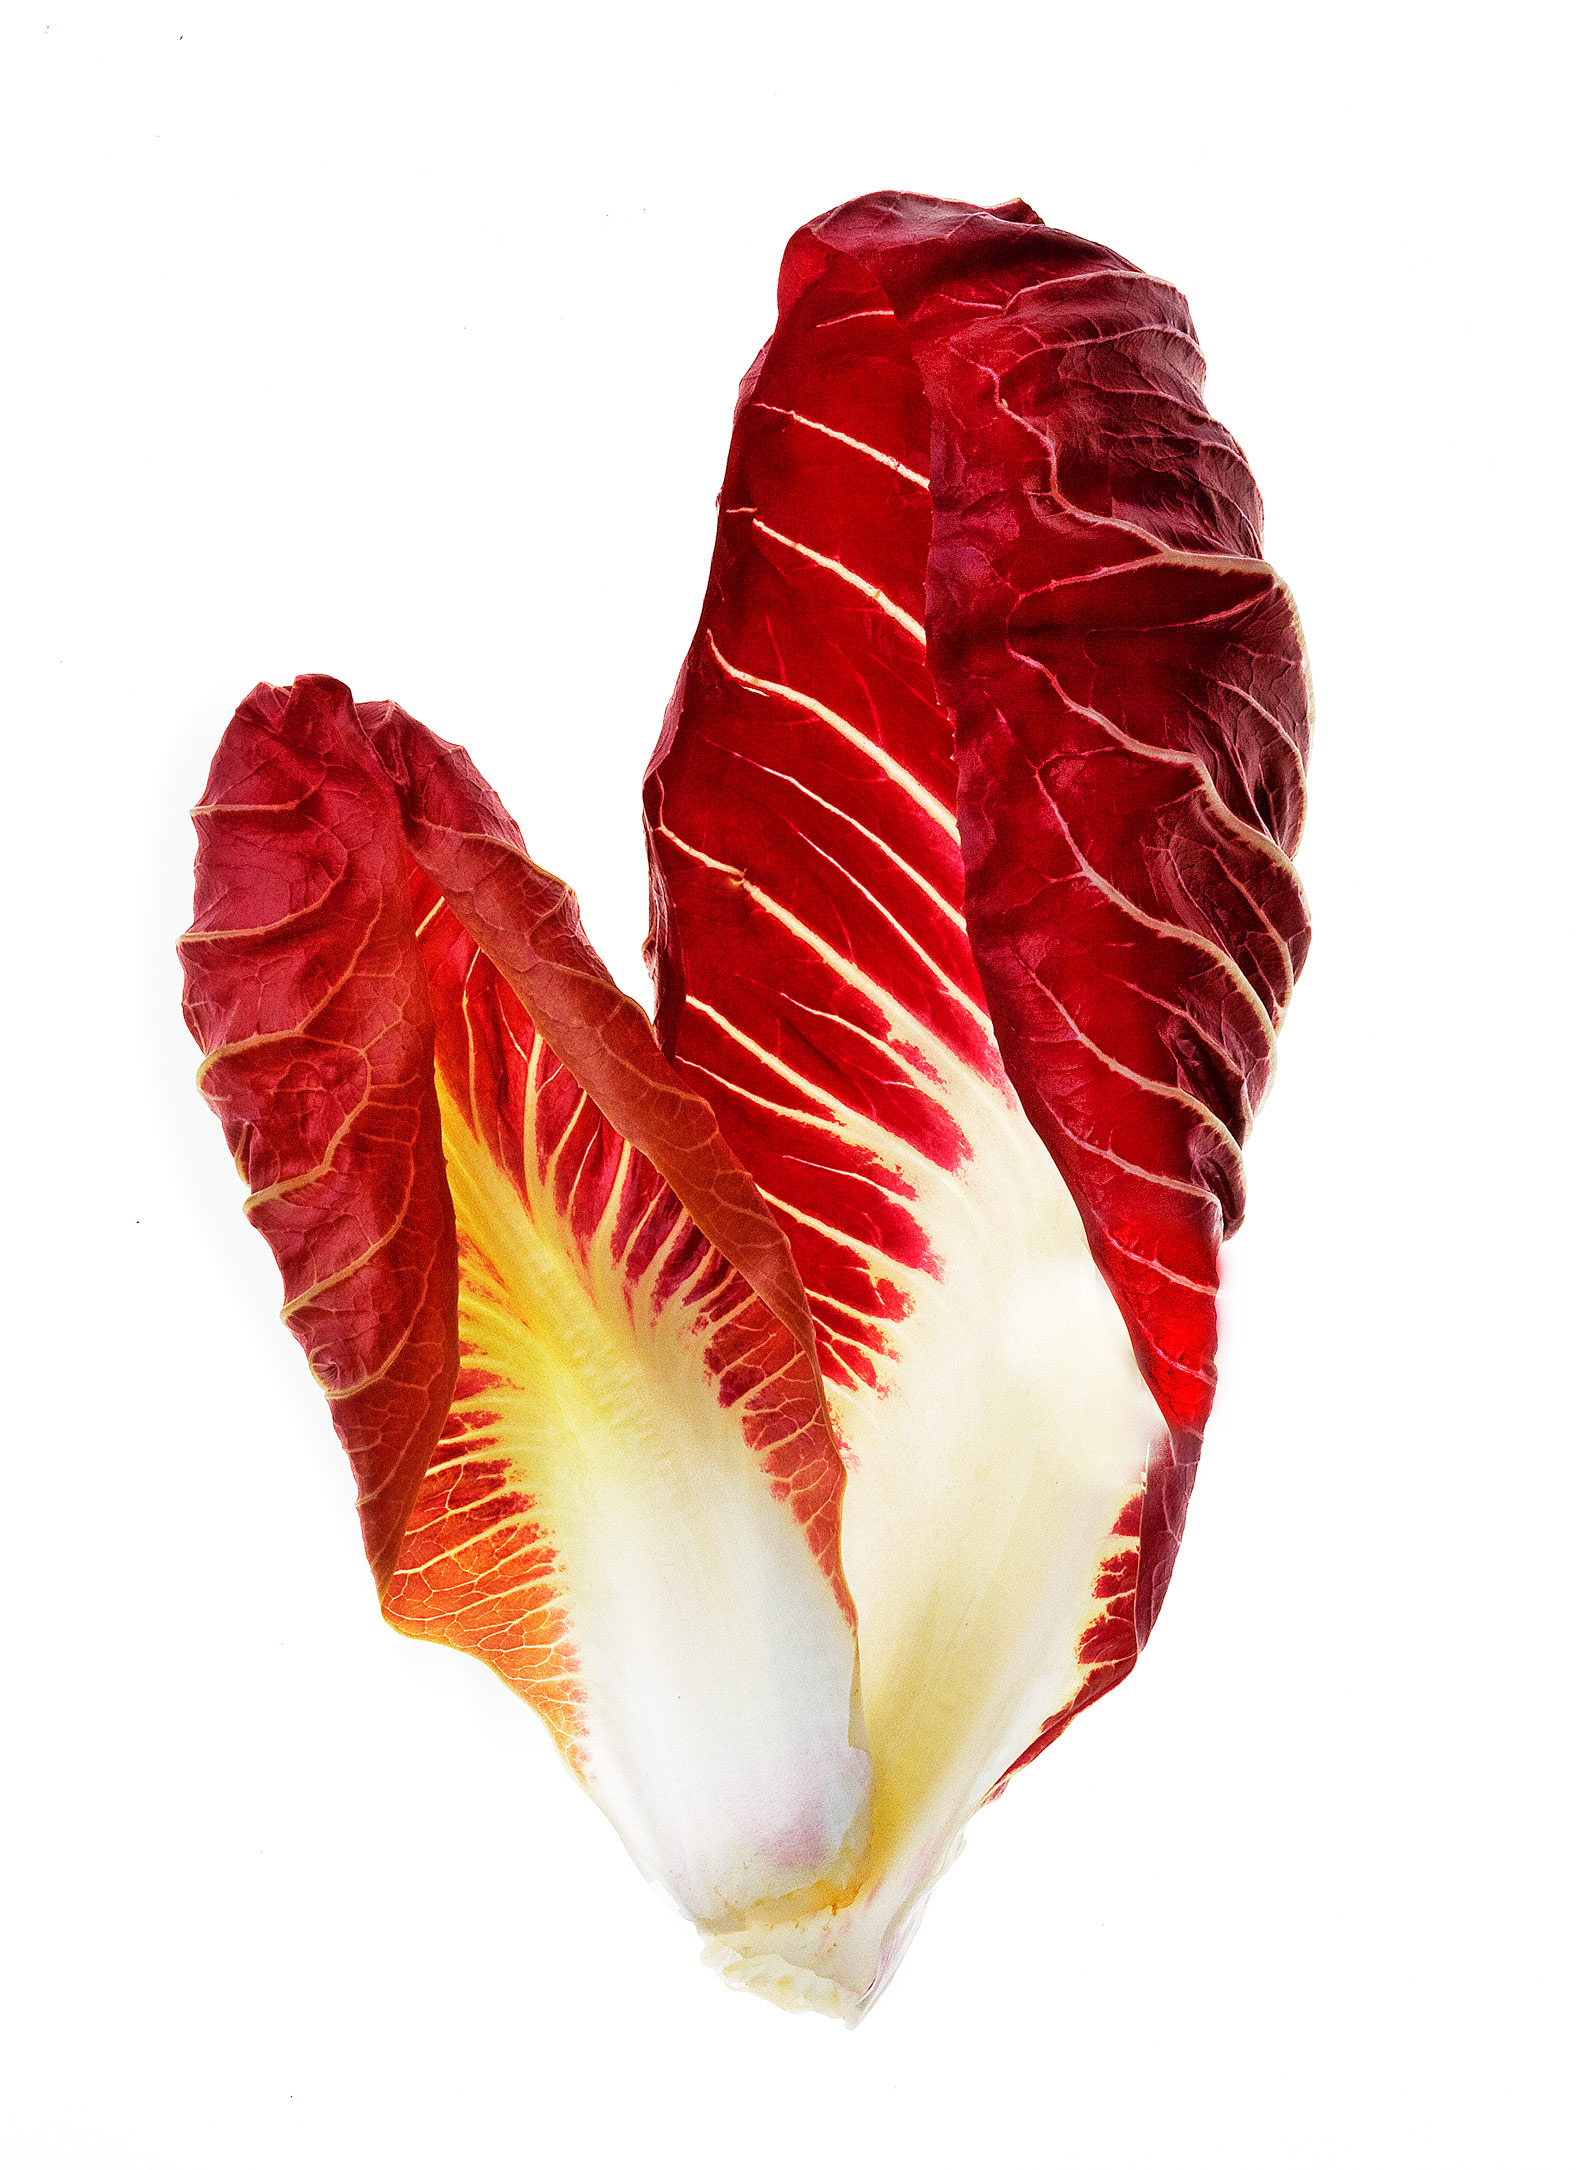 red radicchio, Rose Hodges Food Photography San Francisco